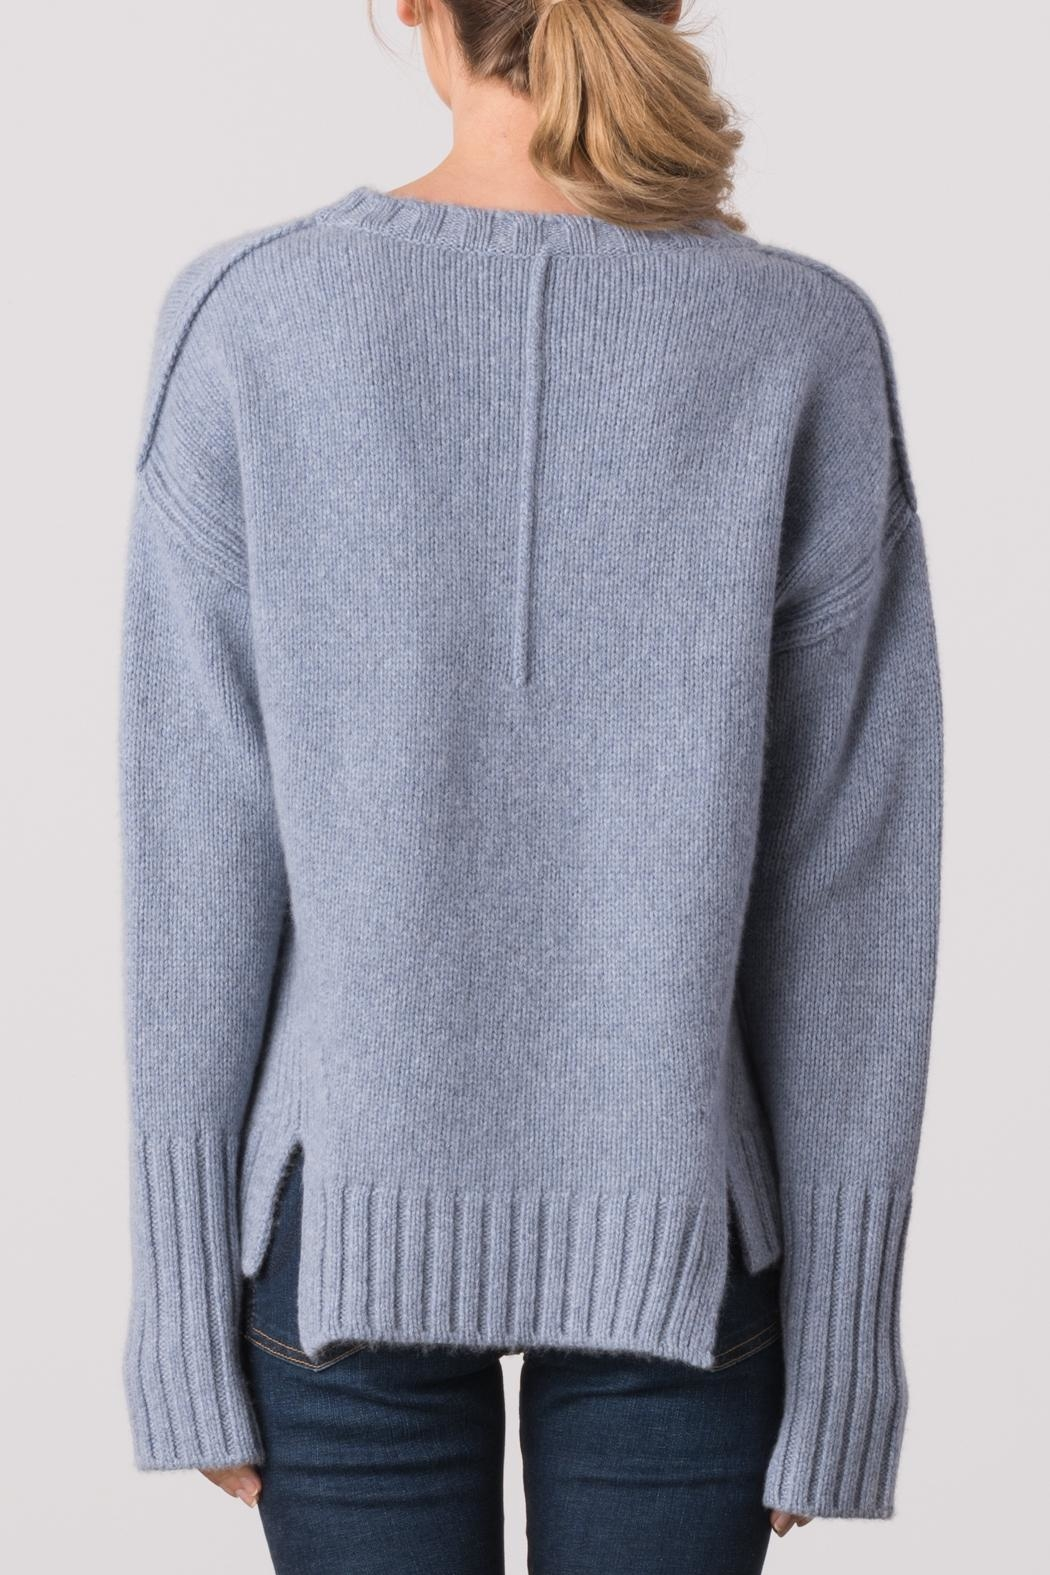 Margaret O'Leary Jana Luxe Pullover - Side Cropped Image